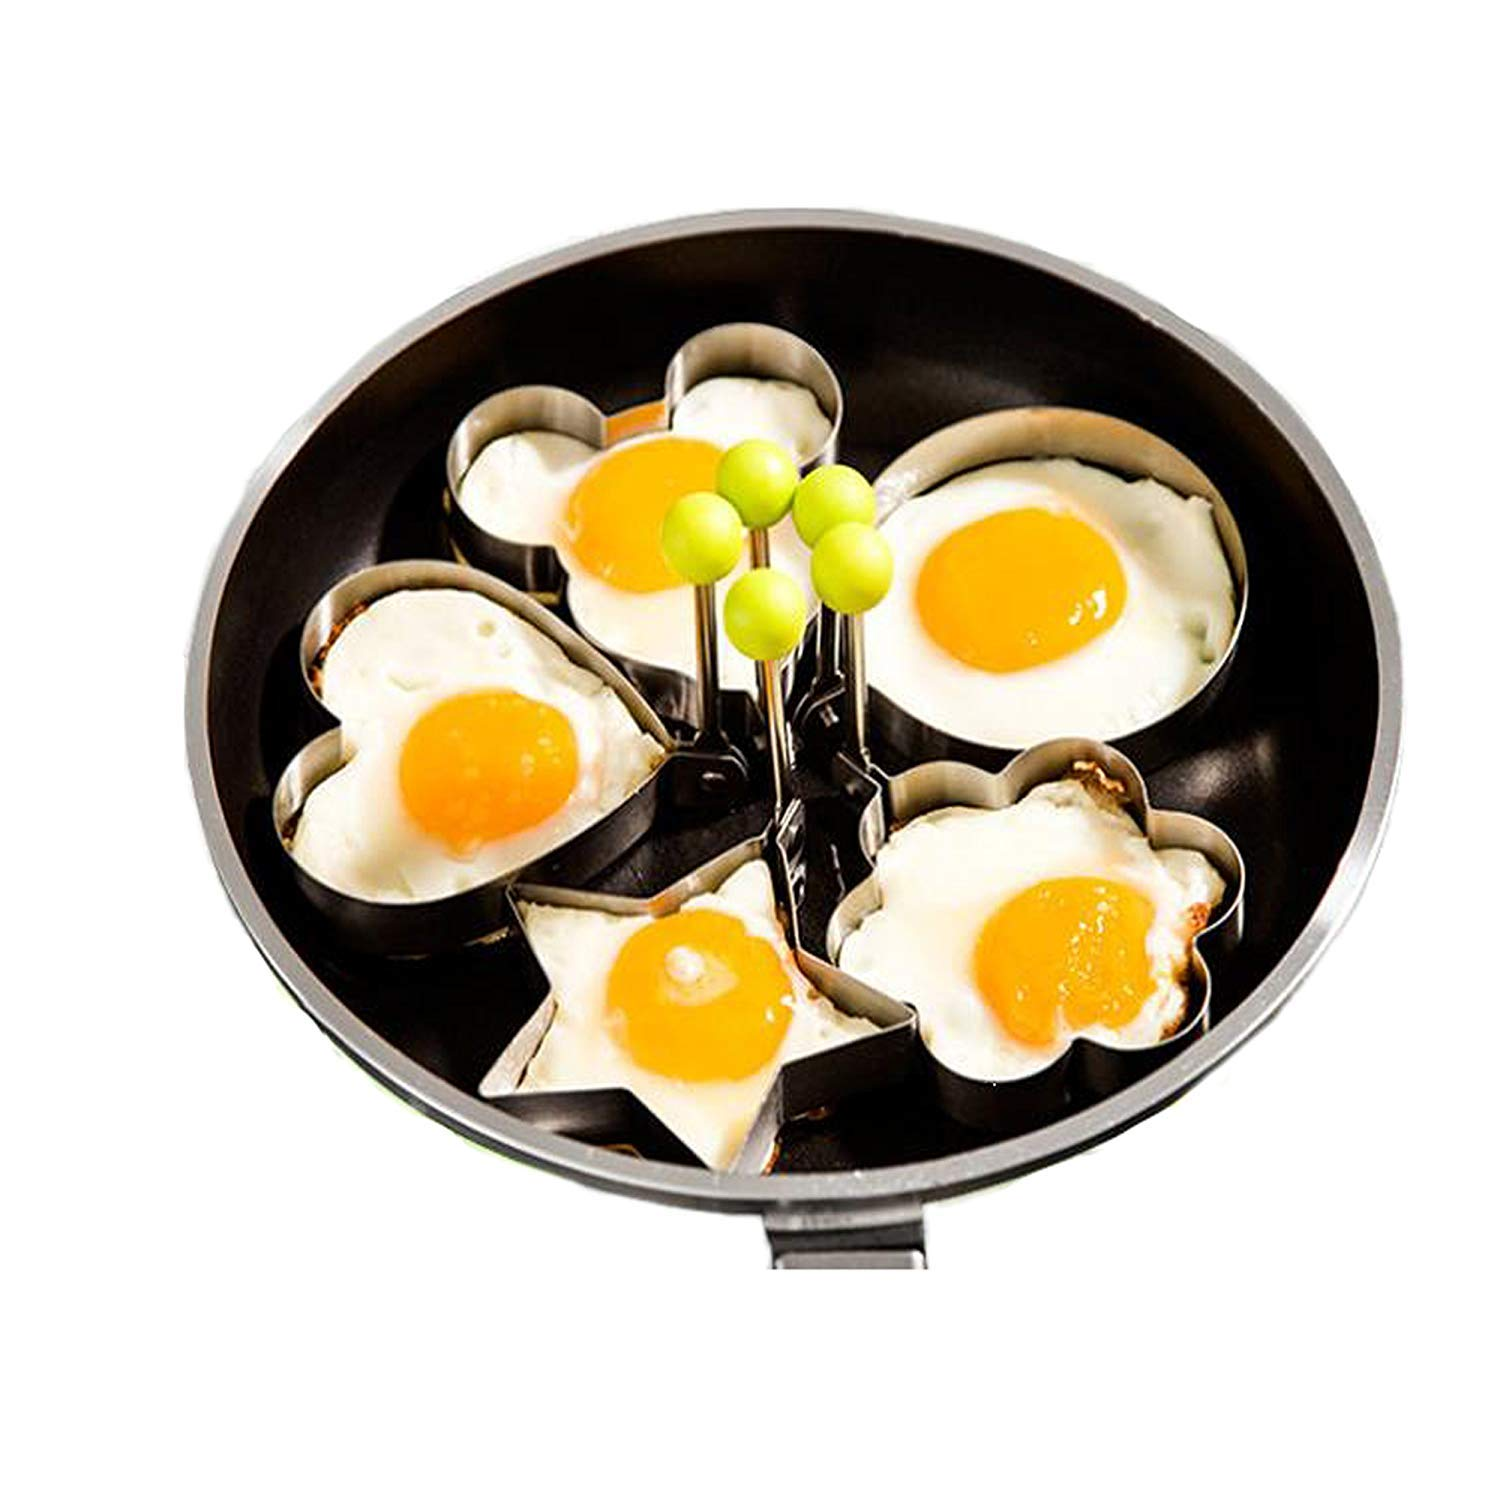 Magik 5 Pcs Fried Egg Non Stick Stainless Steel Pancake Ring Mold Cooking Kitchen Tools by Magik (Image #9)